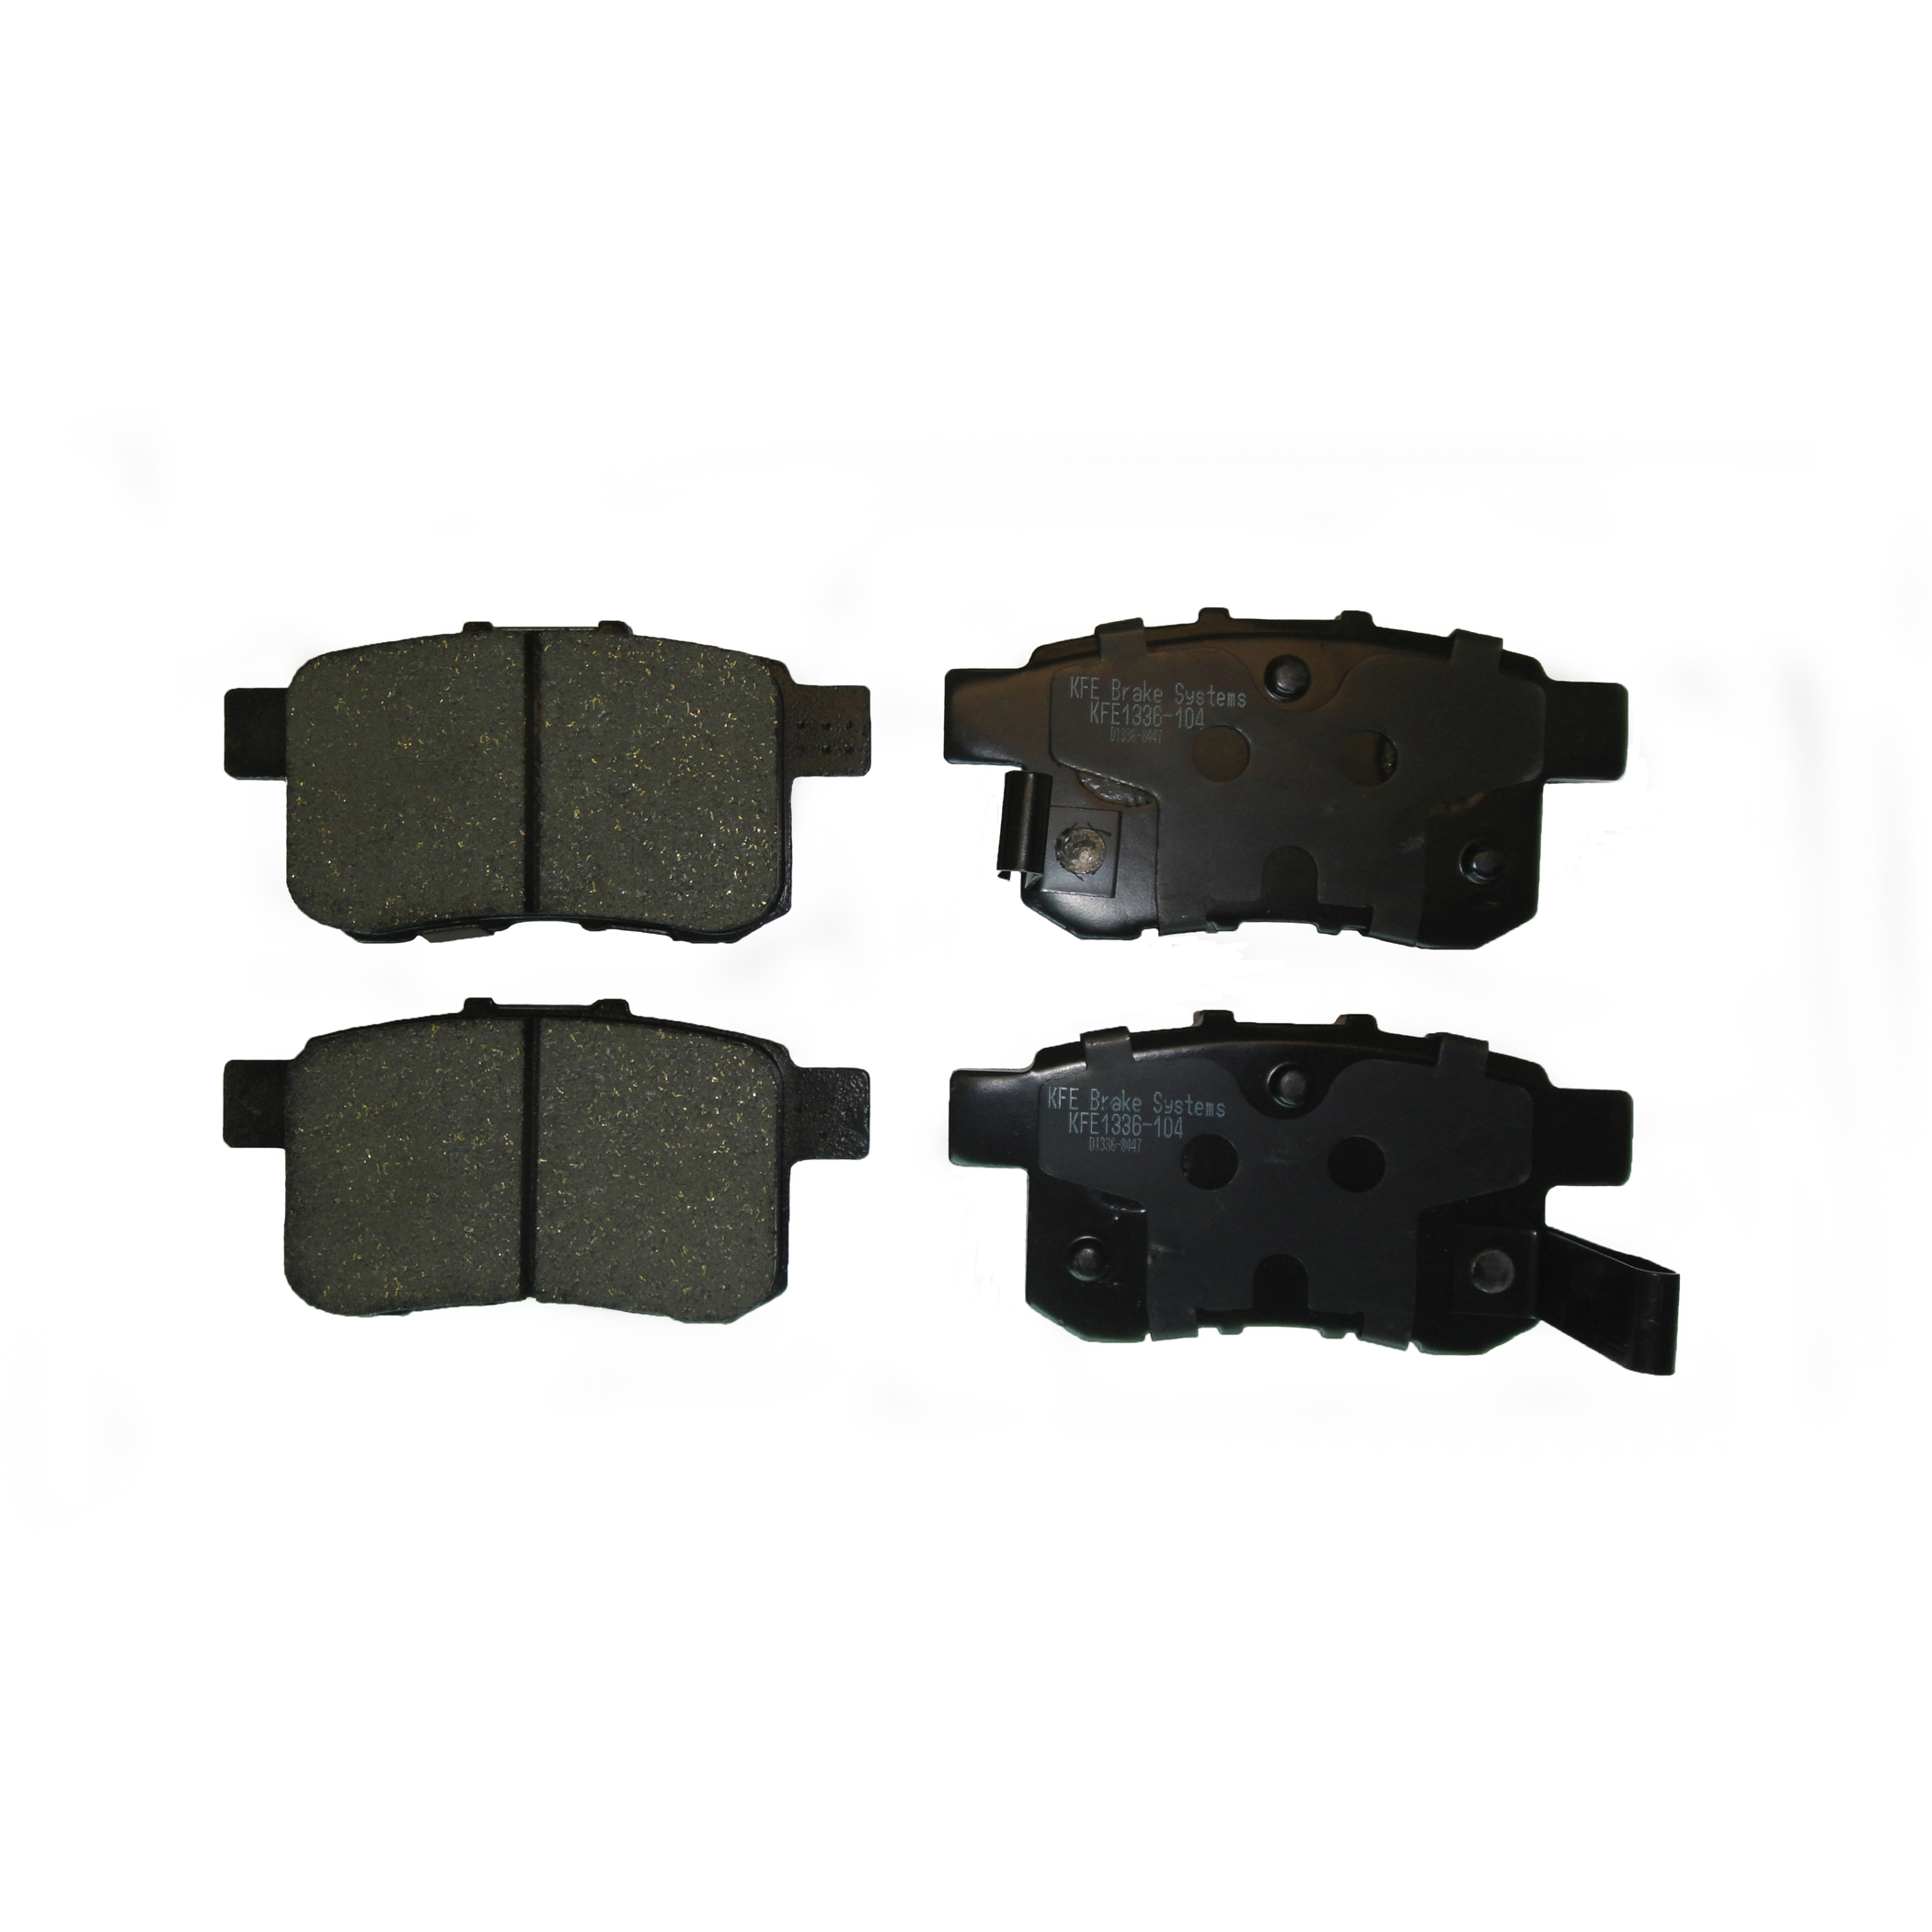 KFE1336-104 Ultra Quiet Advanced Brake Pad